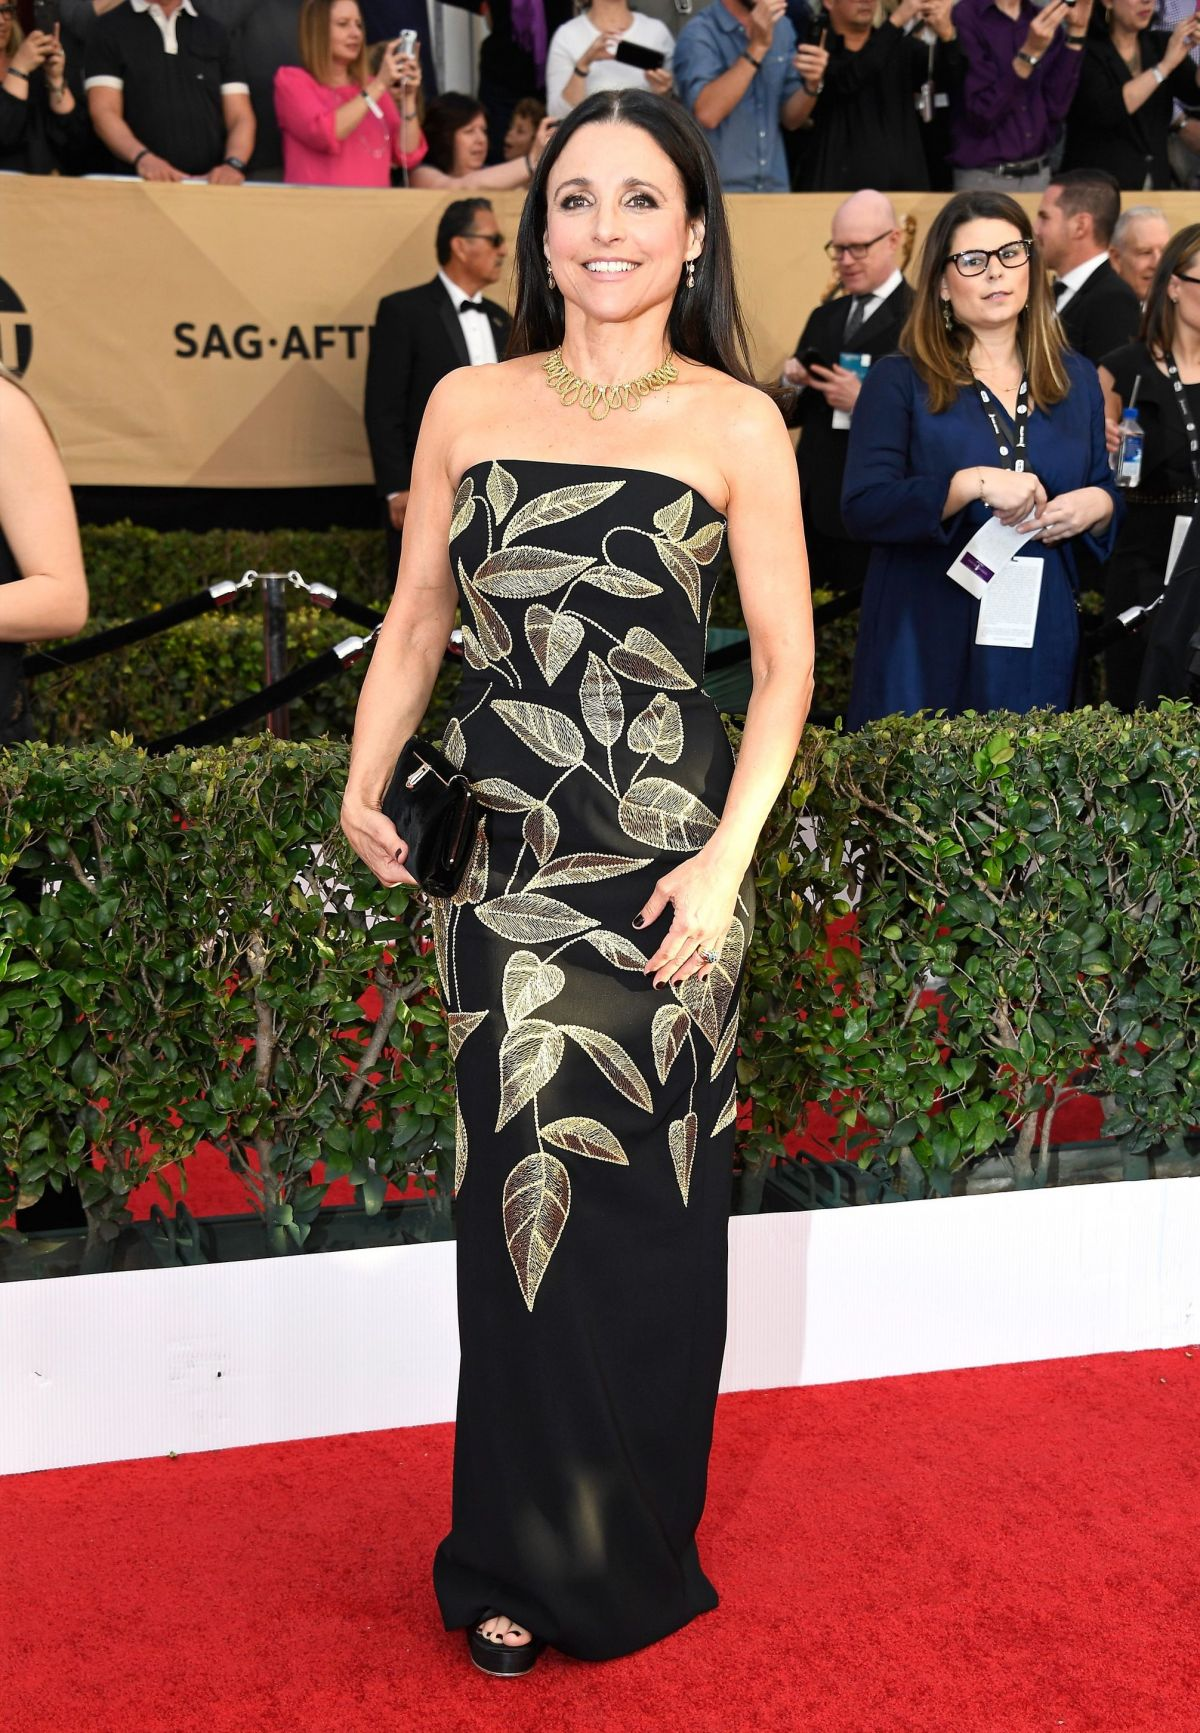 JULIA LOUIS-DREYFUS at 23rd Annual Screen Actors Guild Awards in Los Angeles 01/29/2017